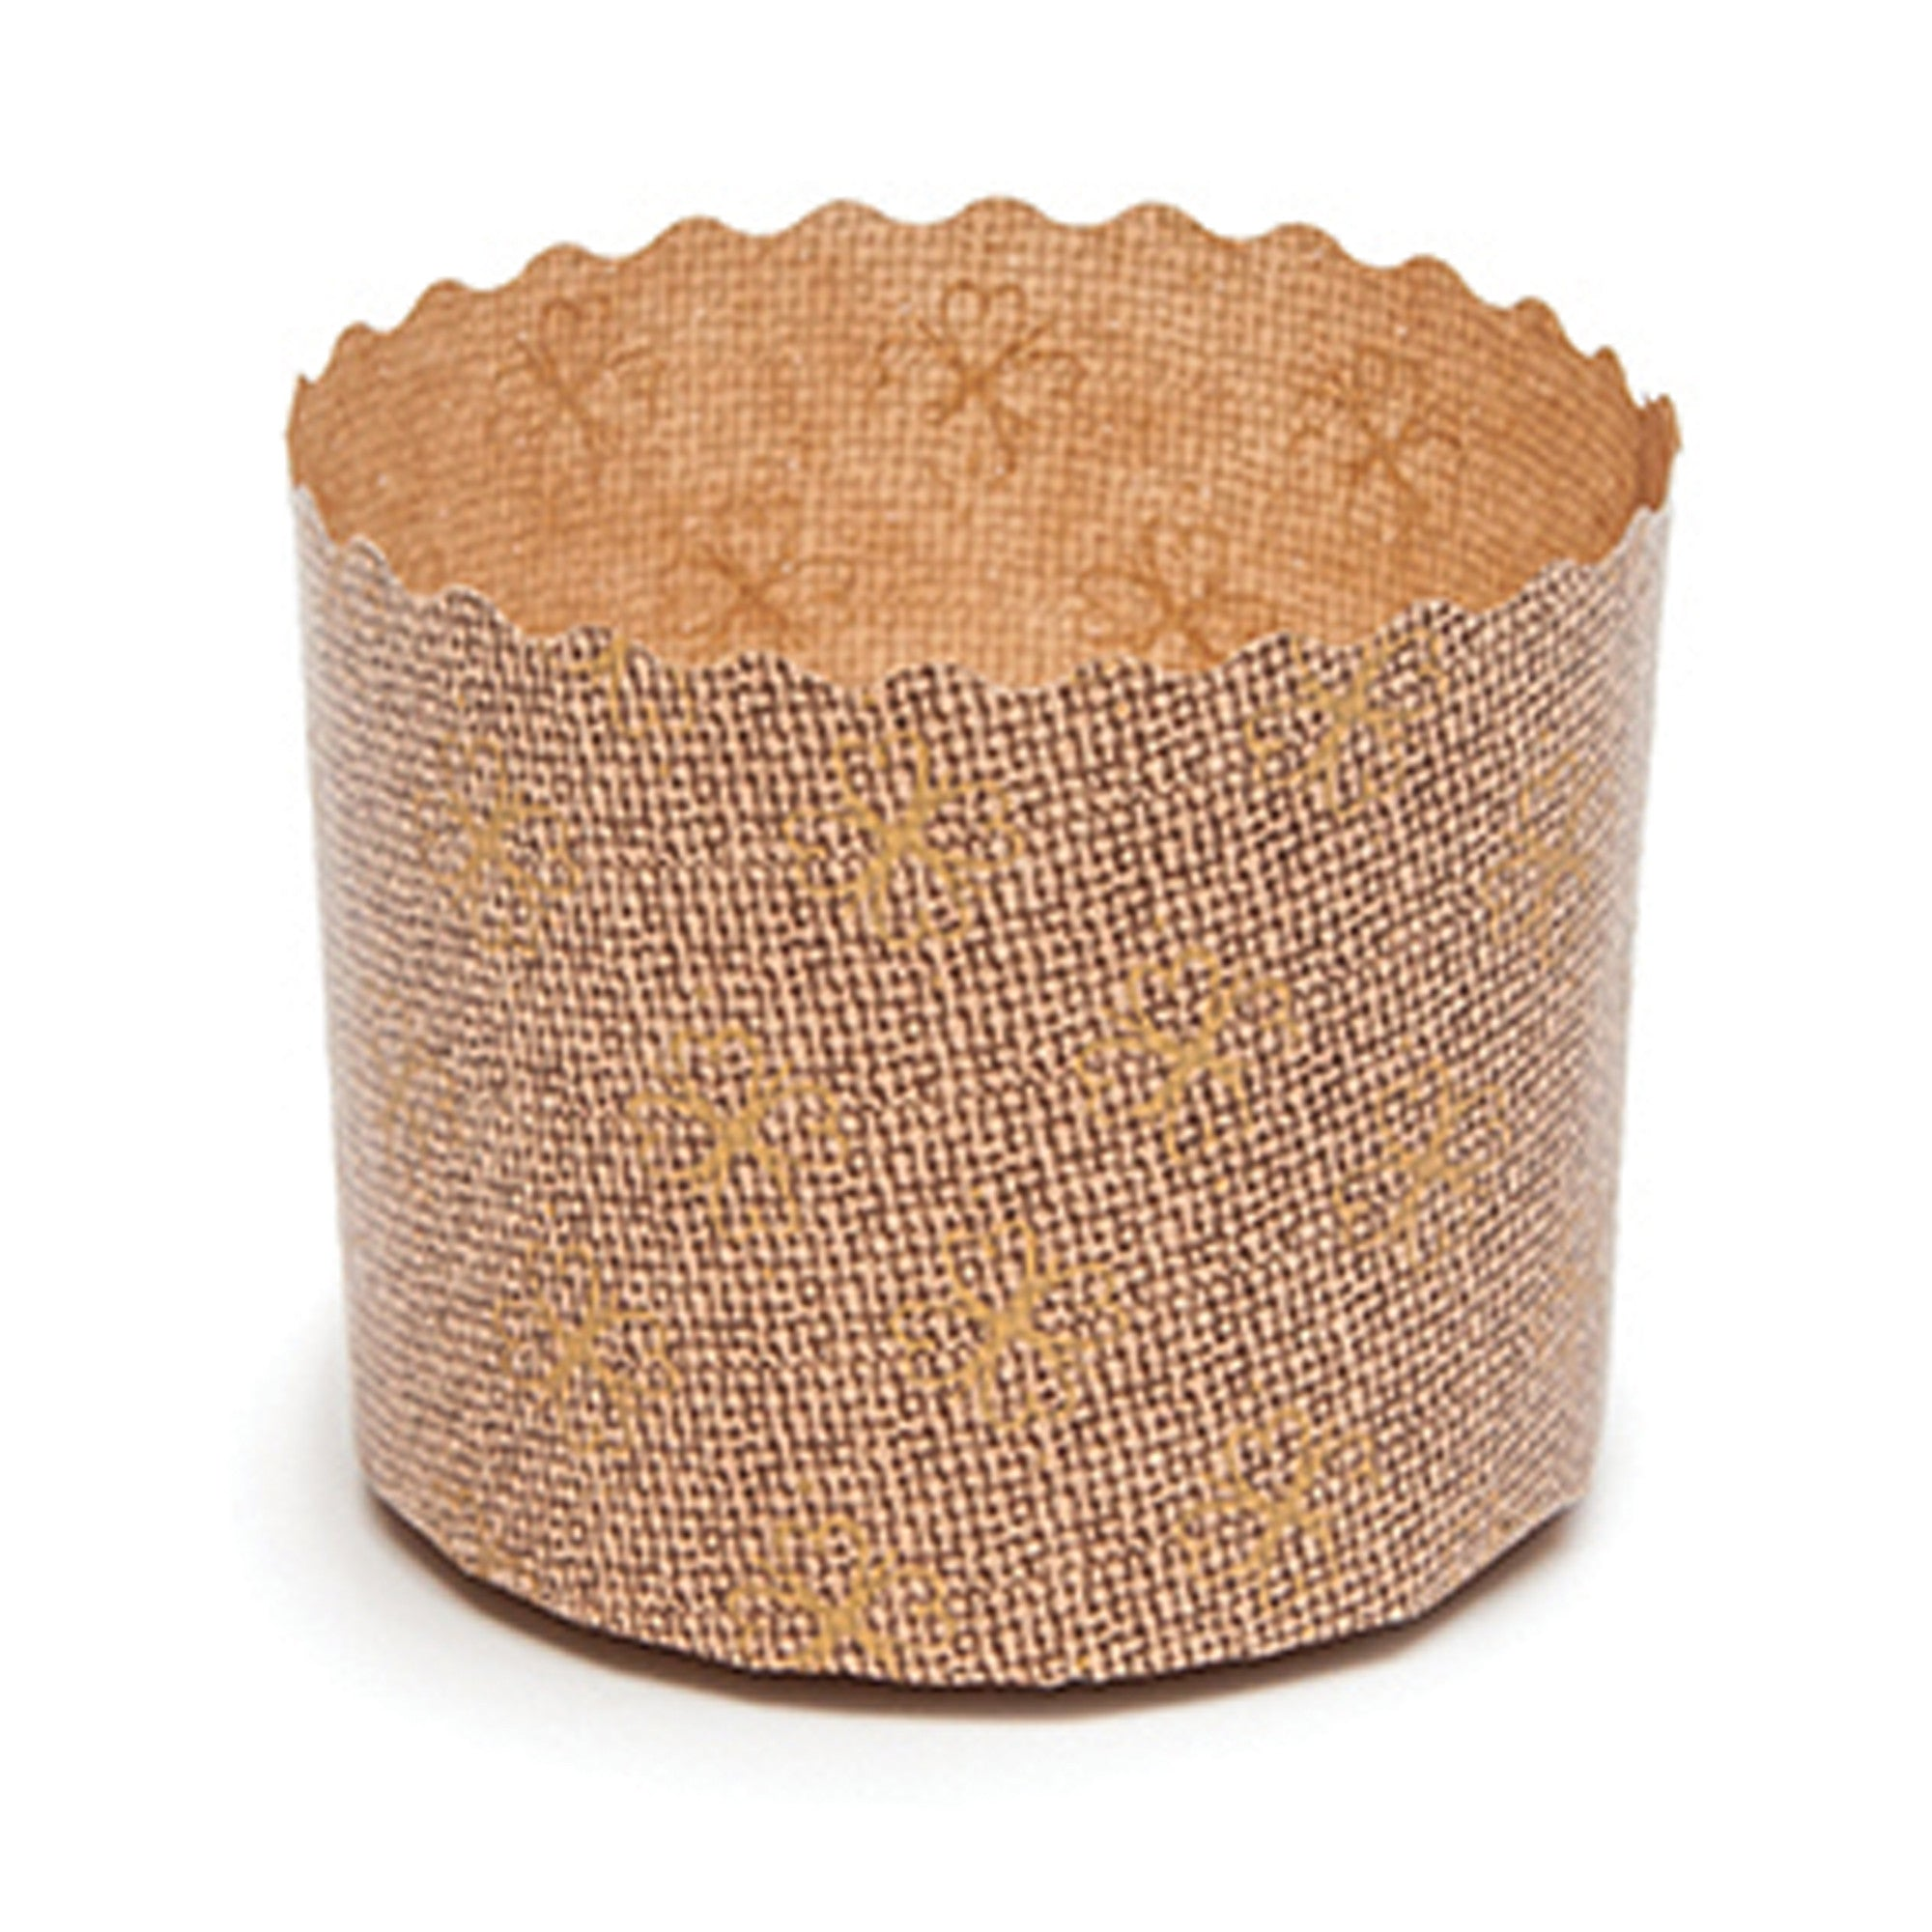 Paper Baking Cups, PA6050 - Welcome Home Brands